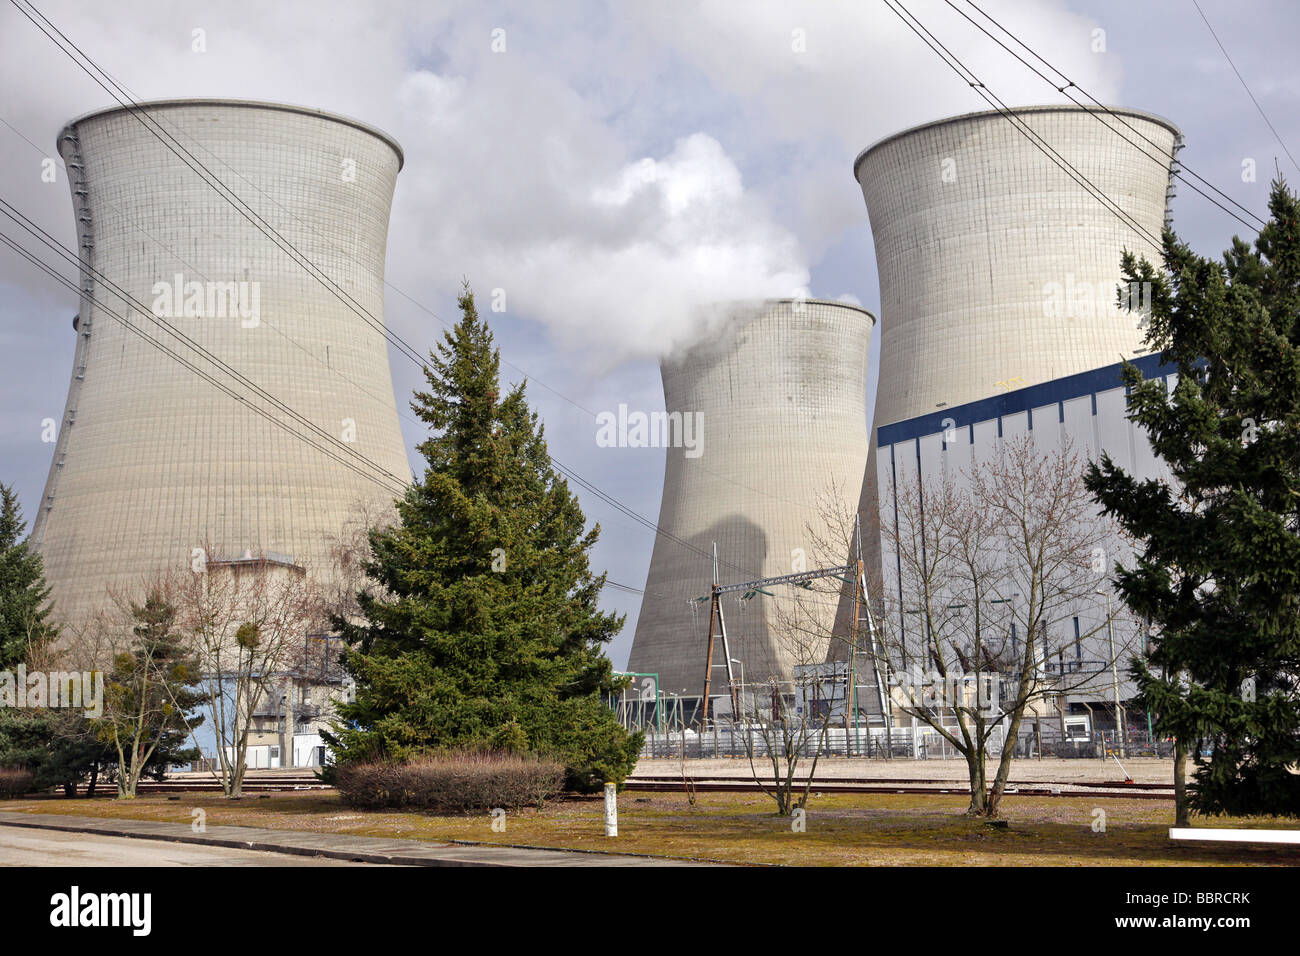 COOLING CHIMNEY (STEAM) AT THE EDF NUCLEAR POWER PLANT, REP TYPE PRESSURIZED WATER REACTOR, BUGEY, AIN (01), FRANCE - Stock Image